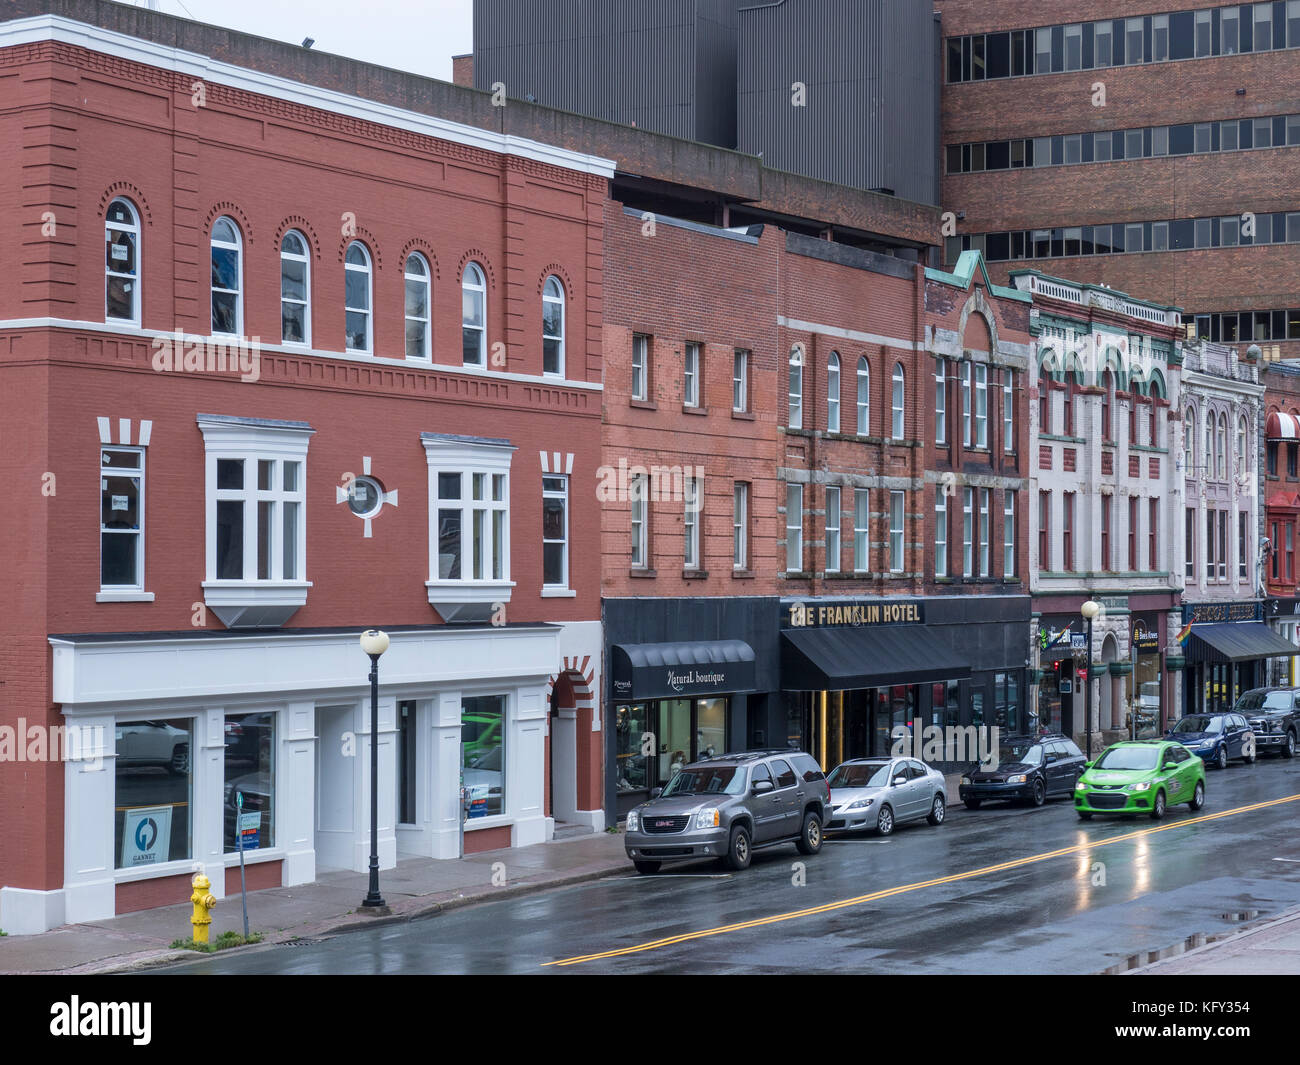 The Franklin Hotel and other shops and restaurants on Water Street, Saint John's, Newfoundland, Canada. - Stock Image